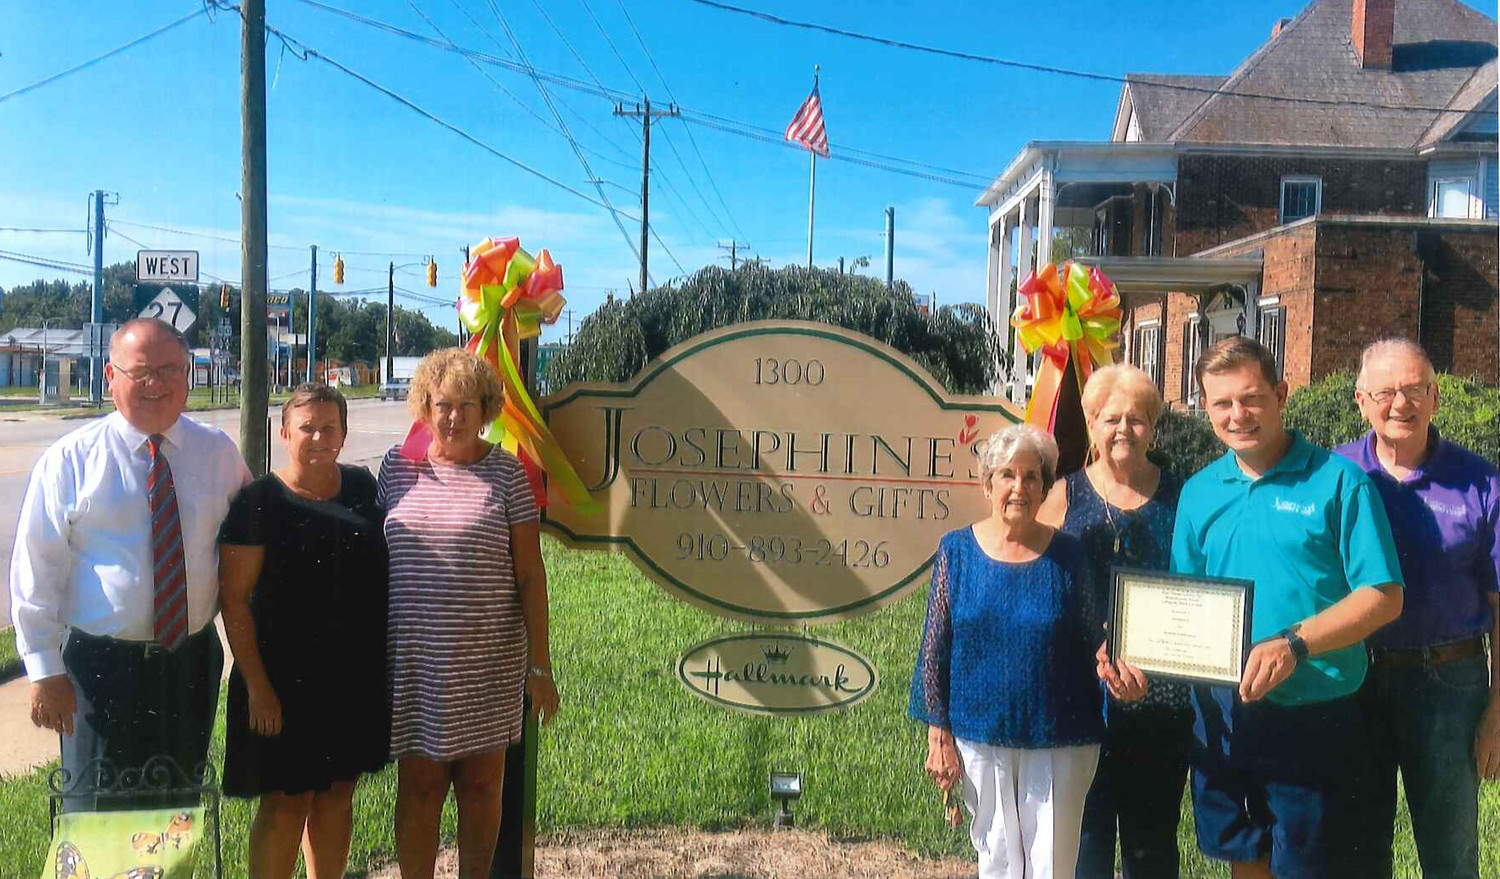 Pictured from left are Paul and Jennifer Phillips, owners of Josephine's Flowers and Gifts; Beverly Brown; Mary Jane Matthews, chair of Beautification Committee; Diane Johnson, member of award committee; Matt Brown, manager of Josephine's Flowers and Gifts; and Ron Hise.